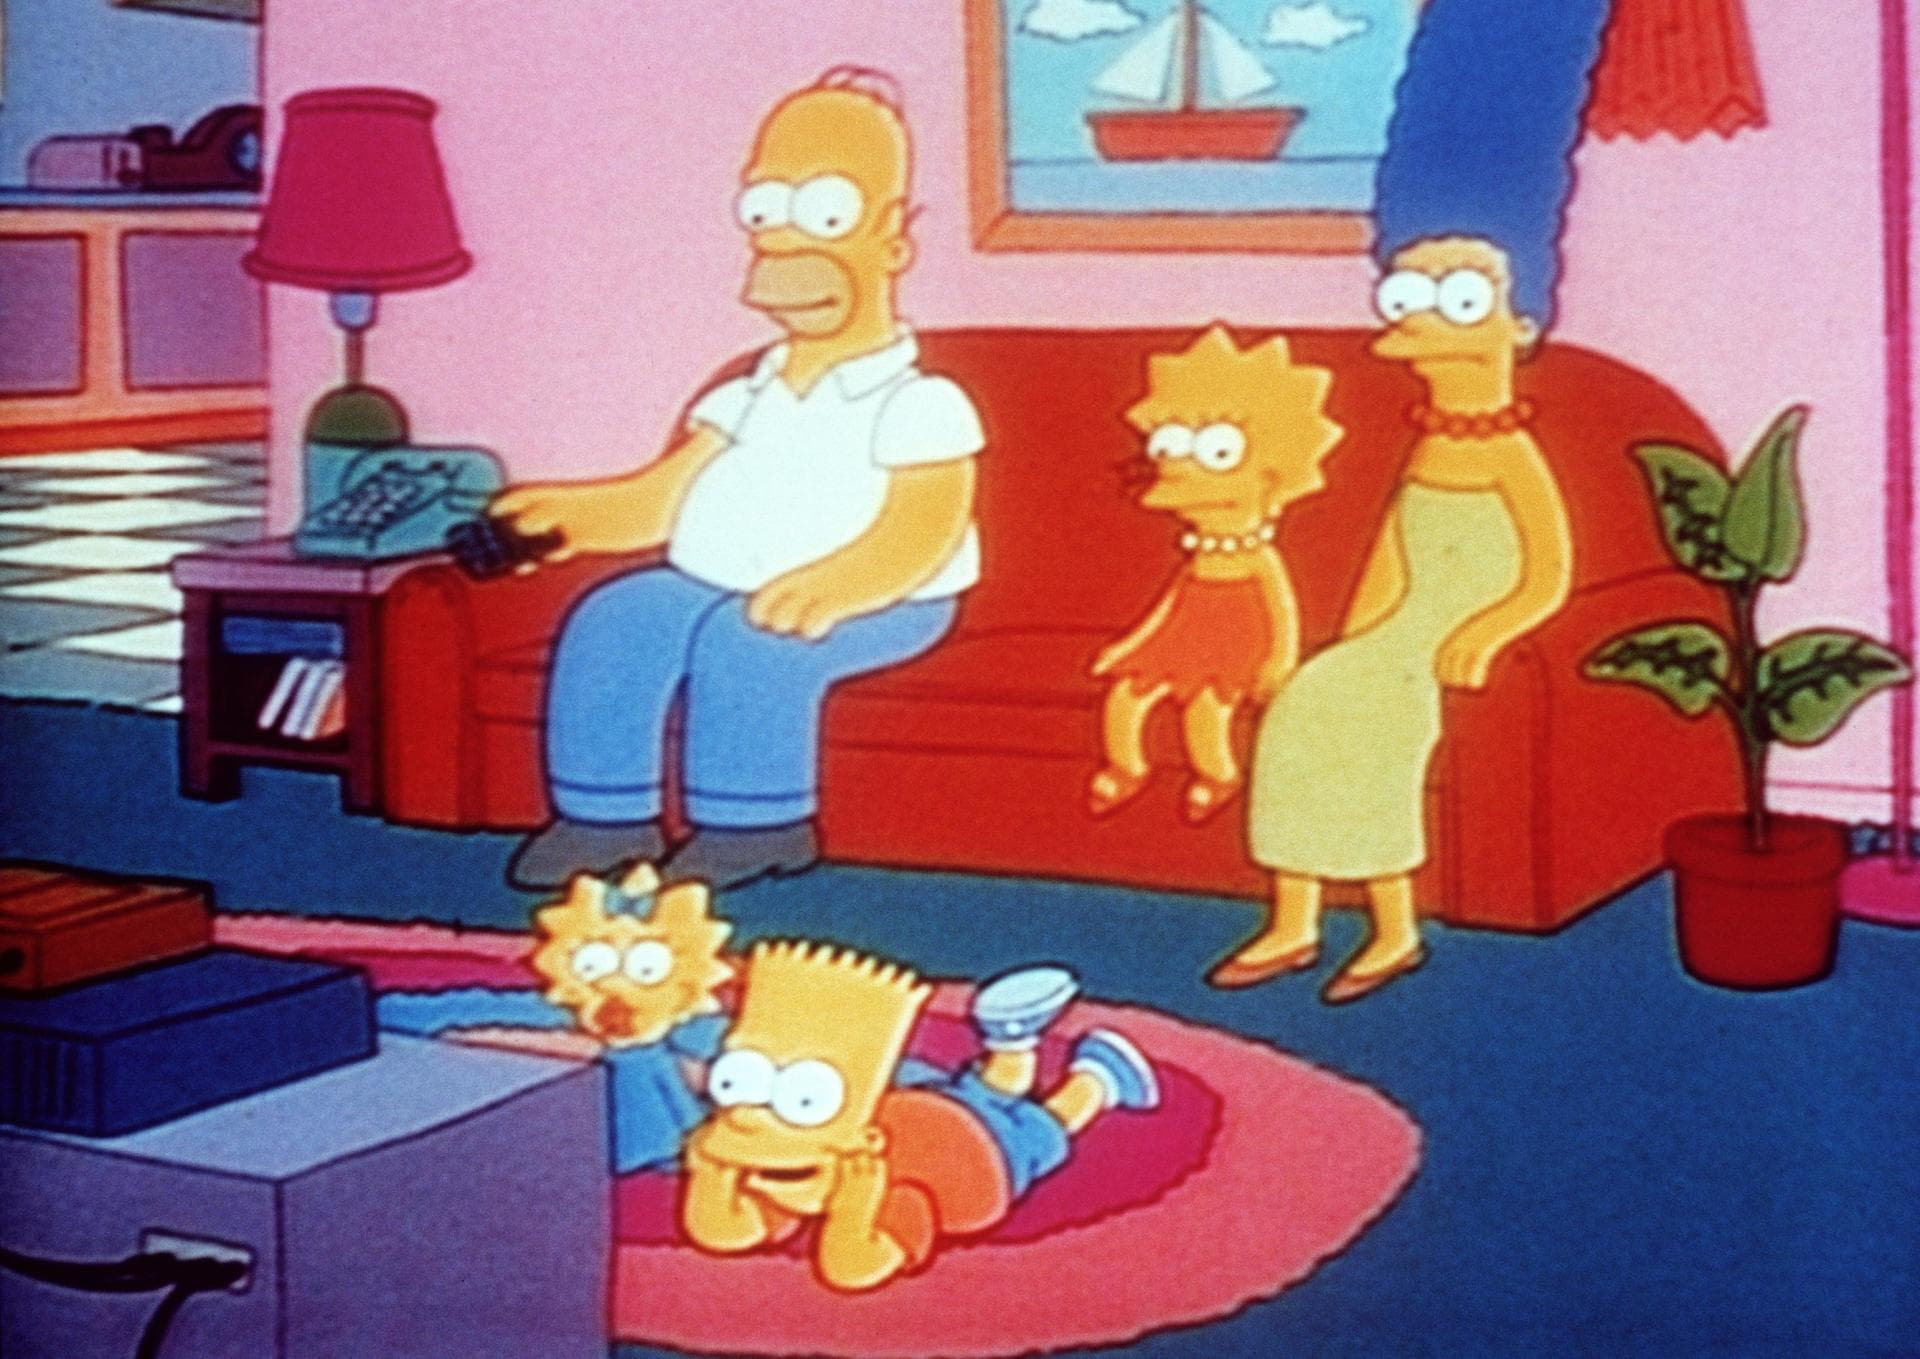 Les Simpson - To Bart or not to Bart